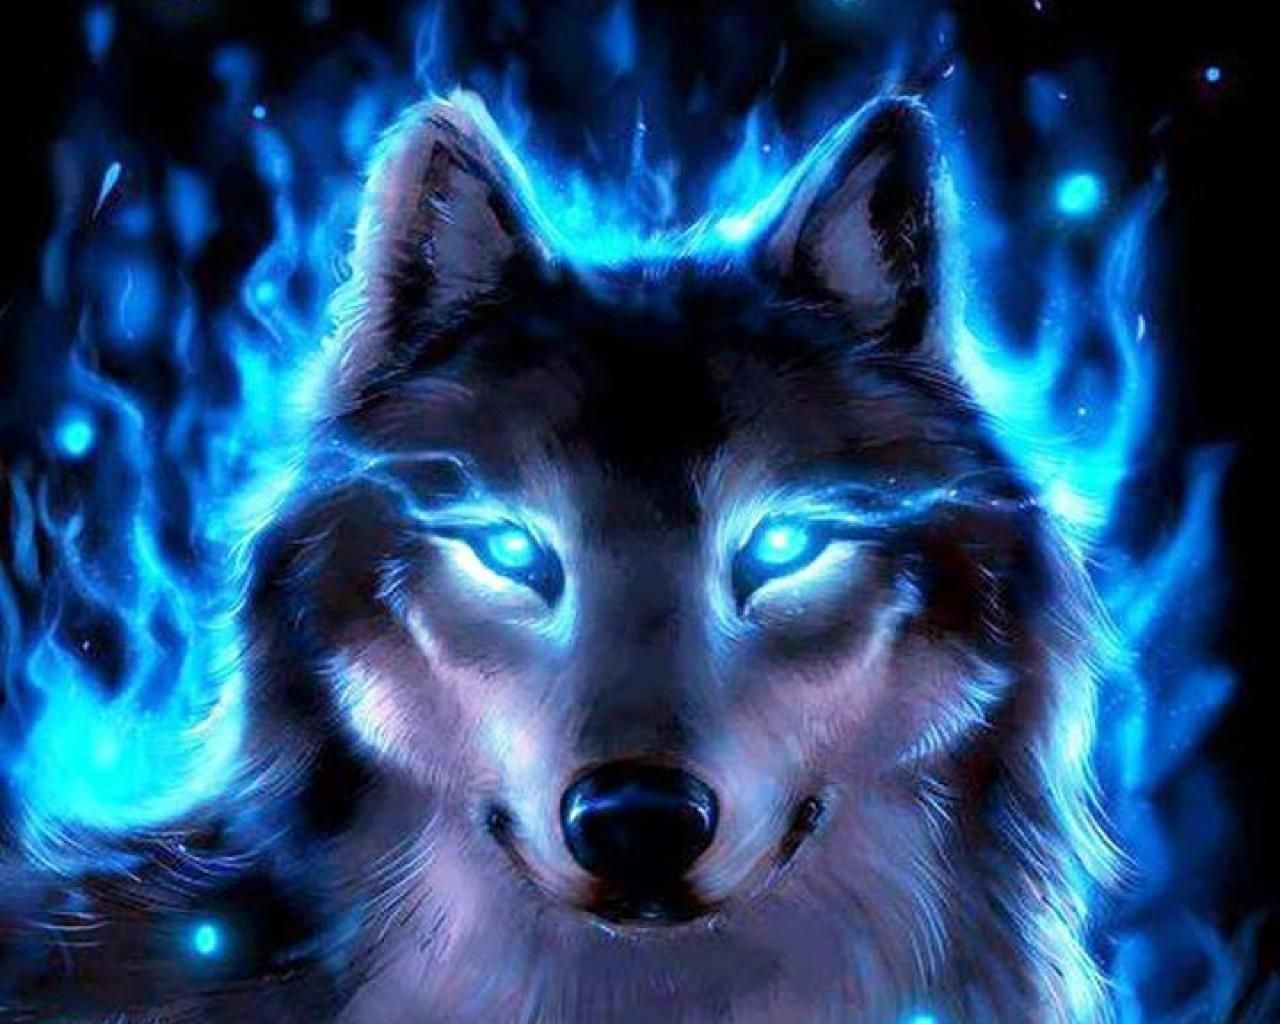 1280x1024 Cool Wolves Backgrounds Wallpaper | Free HD Wallpapers | Book Art in ...